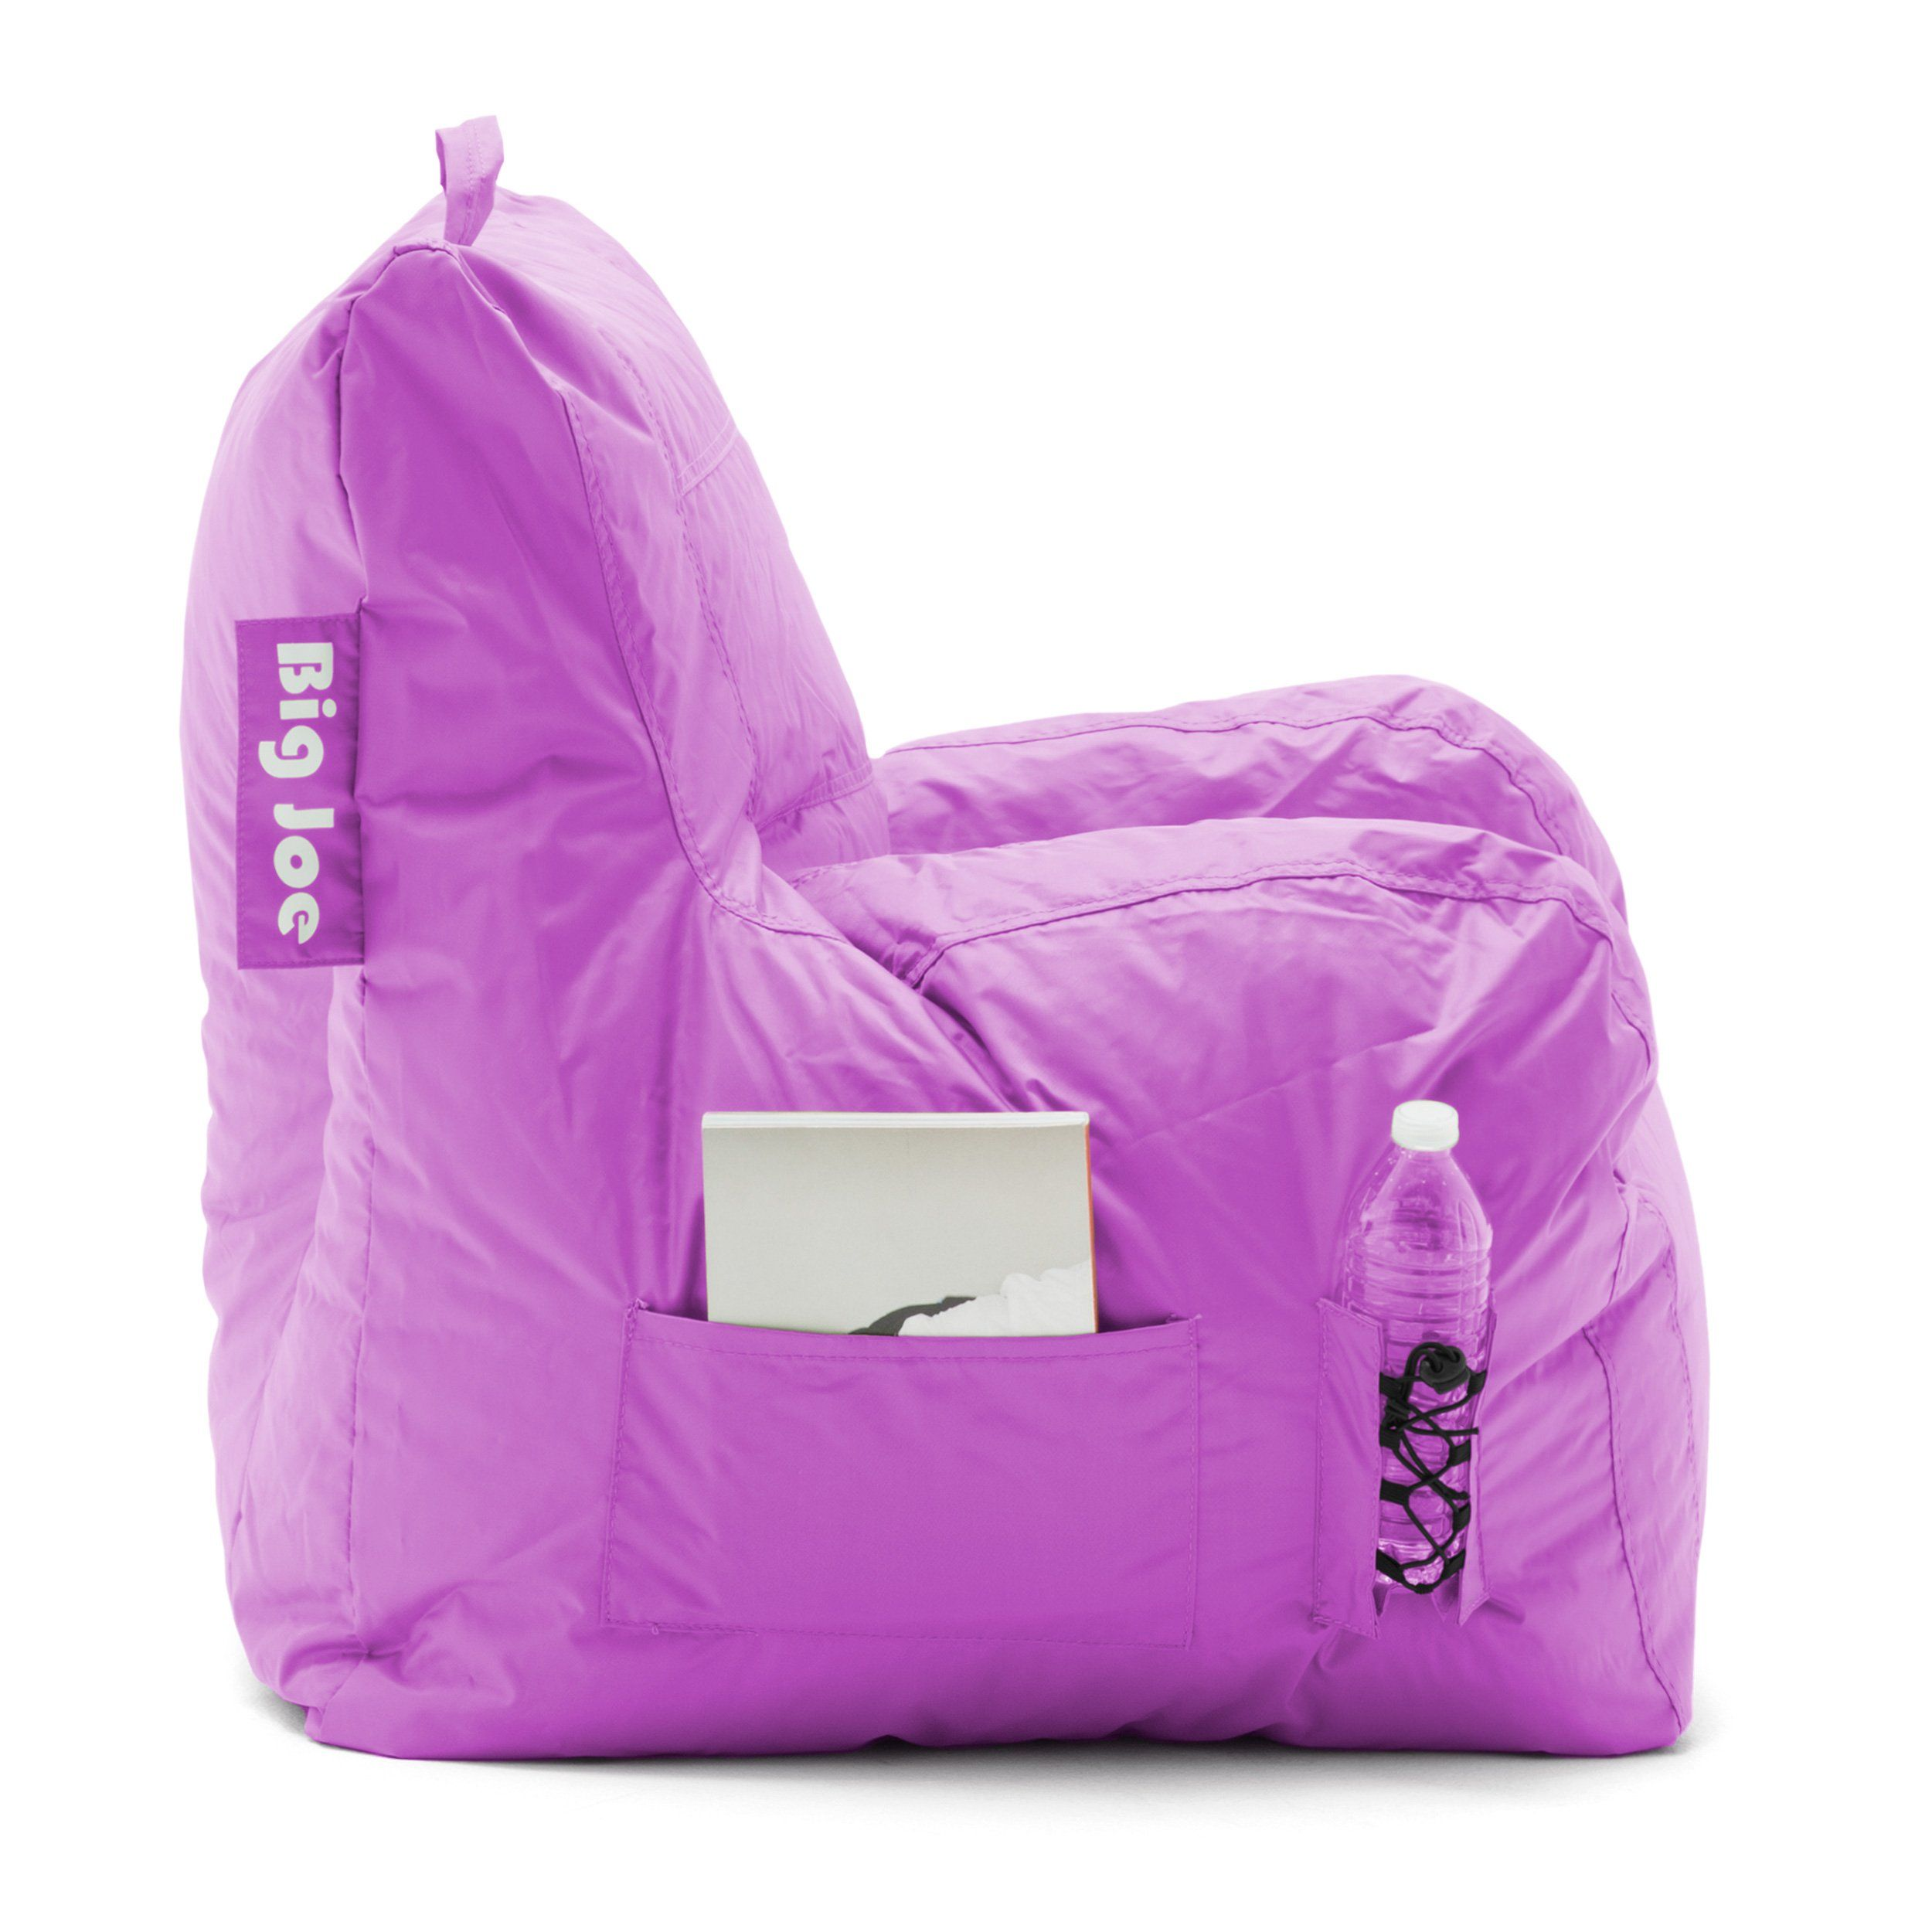 Big Joe Dorm Bean Bag Chair Radiant Orchid Want To Know More